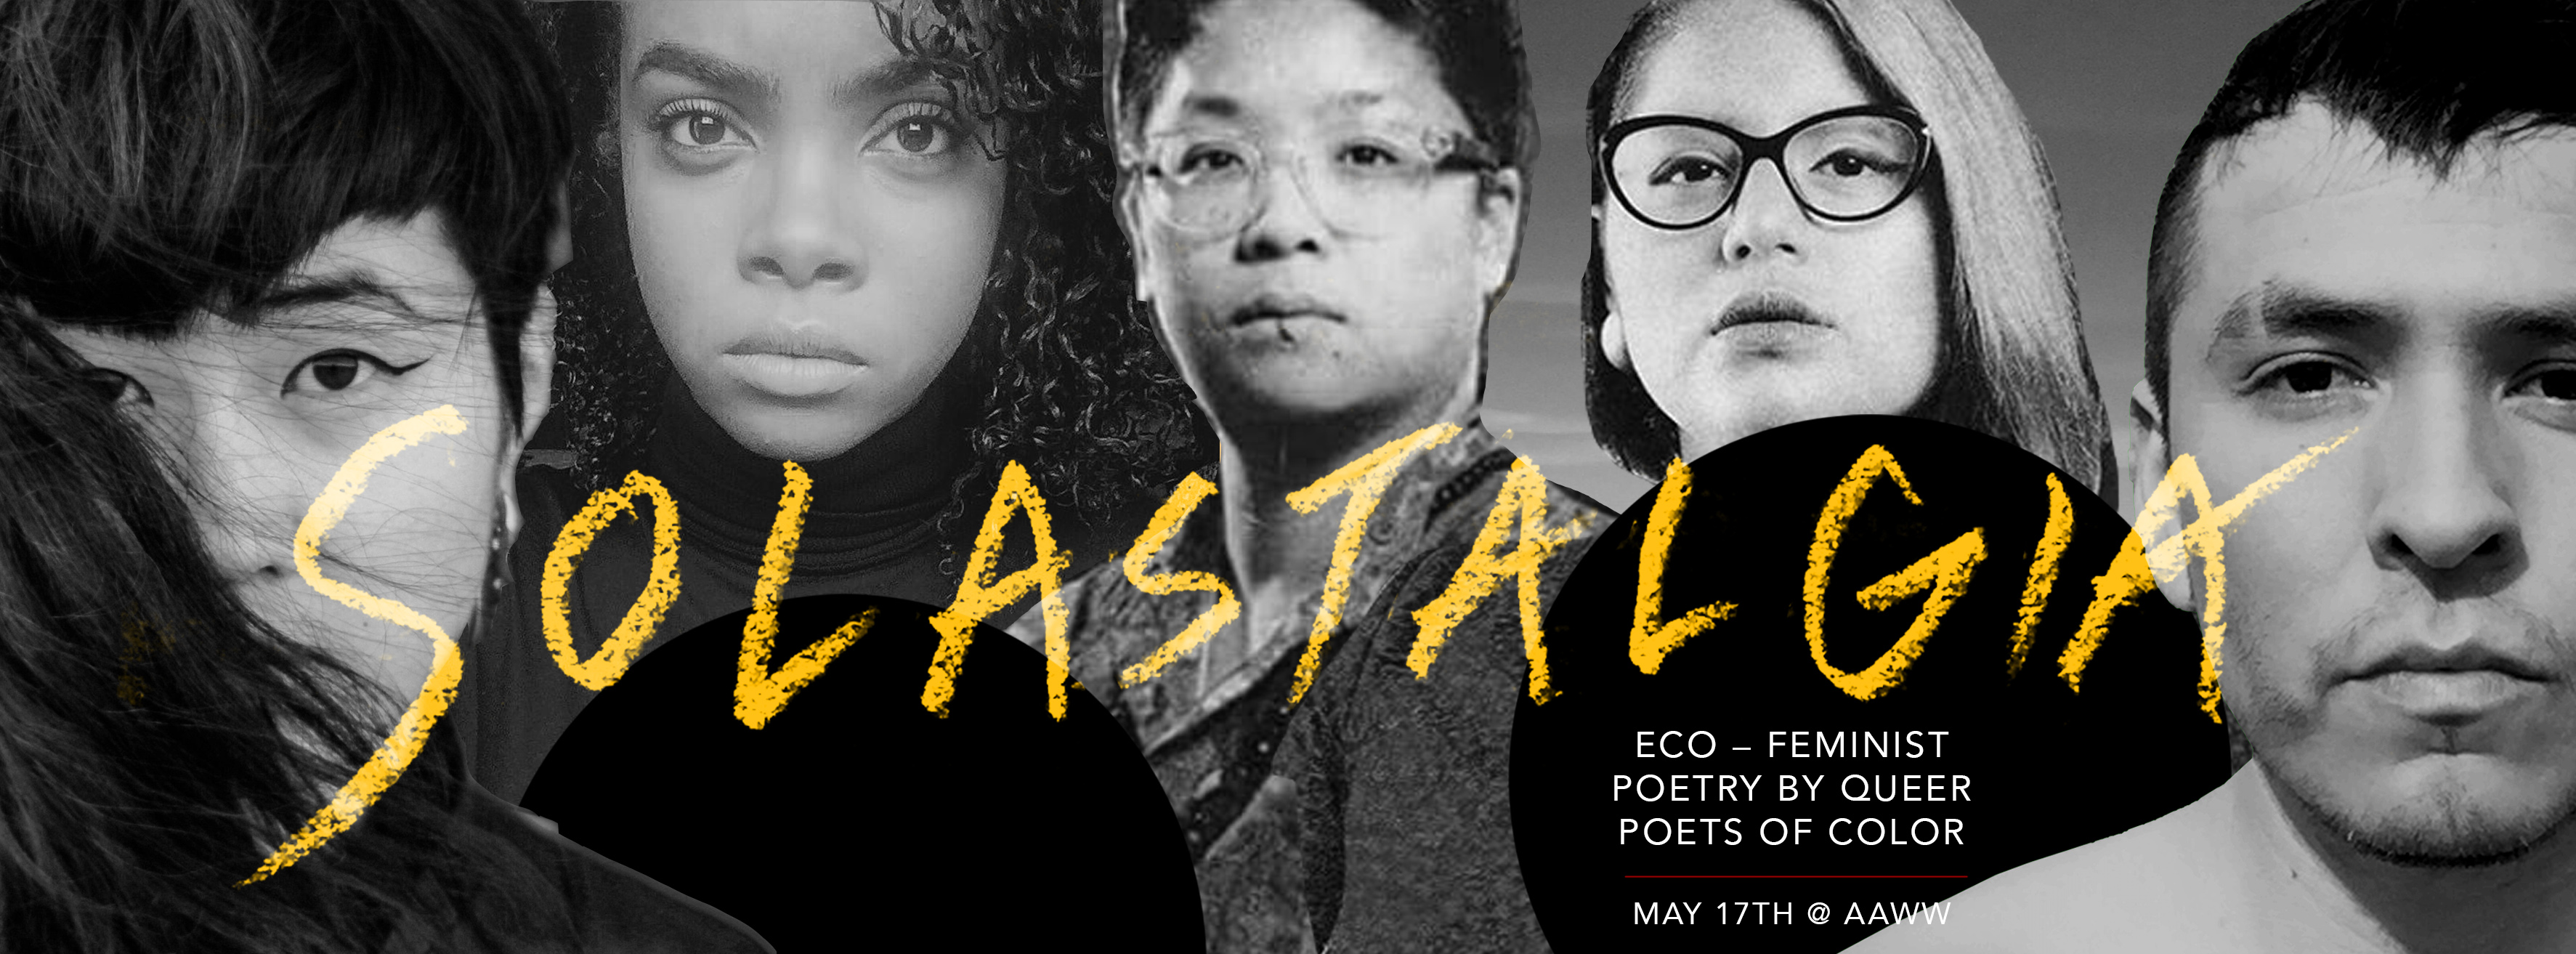 SOLASTALGIA: Eco-Feminist Poetry by Queer Poets of Color